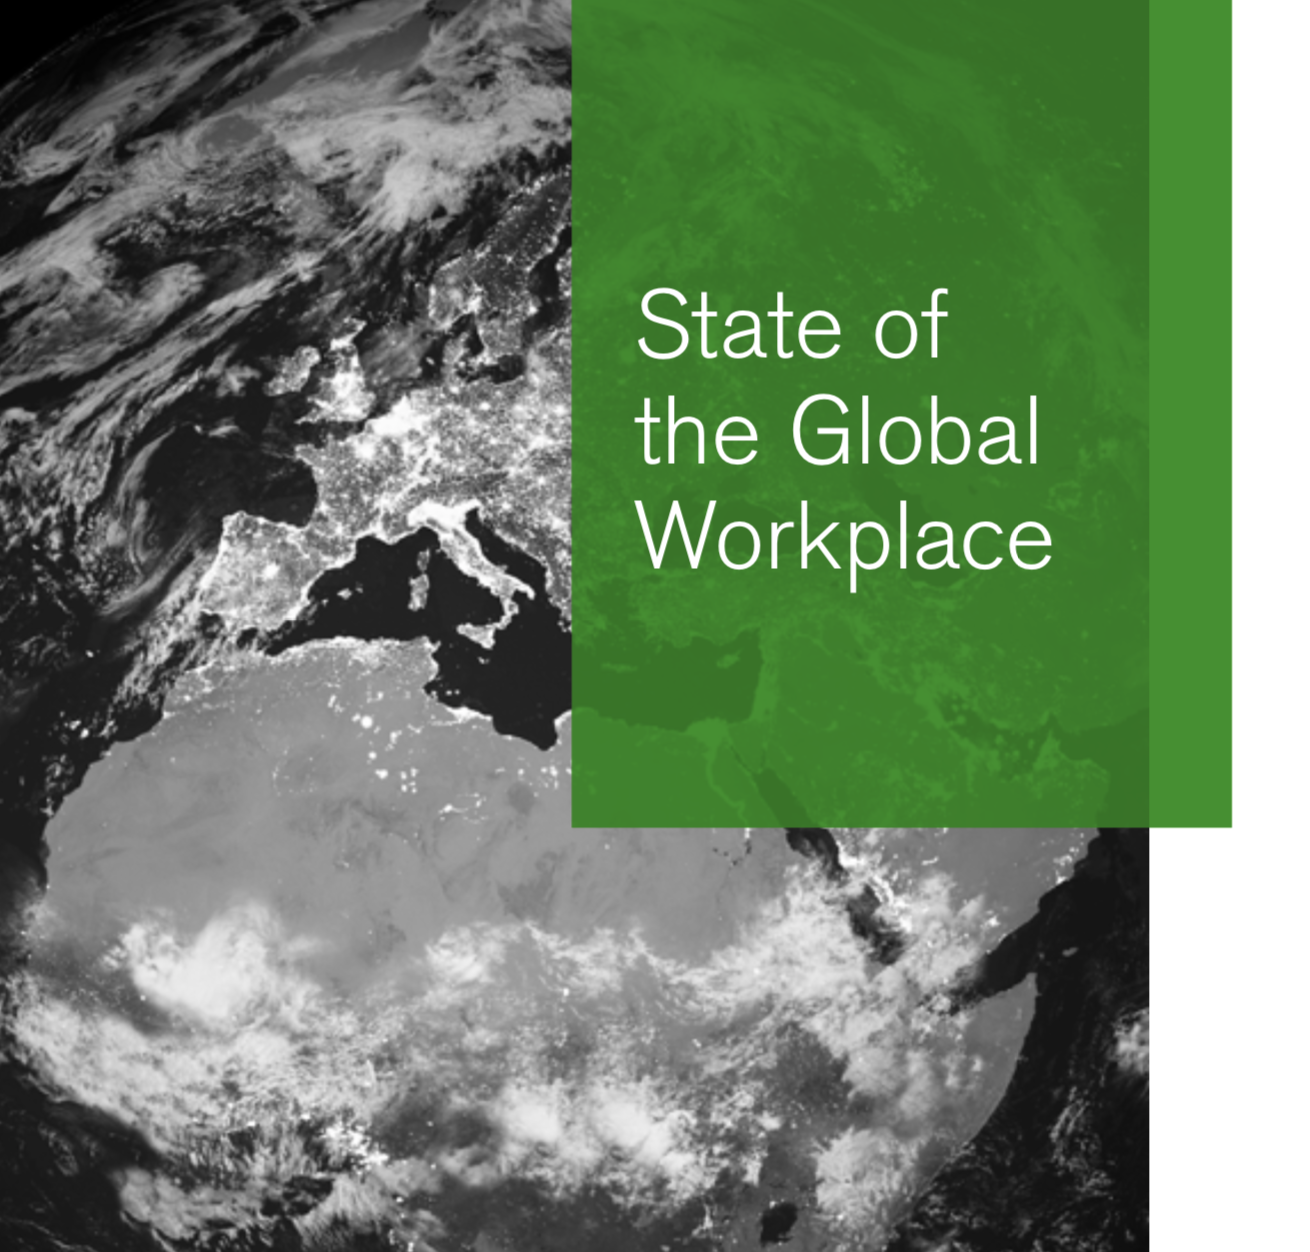 Gallup's State of the Global Workplace report contains critical information to improve people and culture. Read or listen as Fionna summarizes this 215 page report, starting with part one.